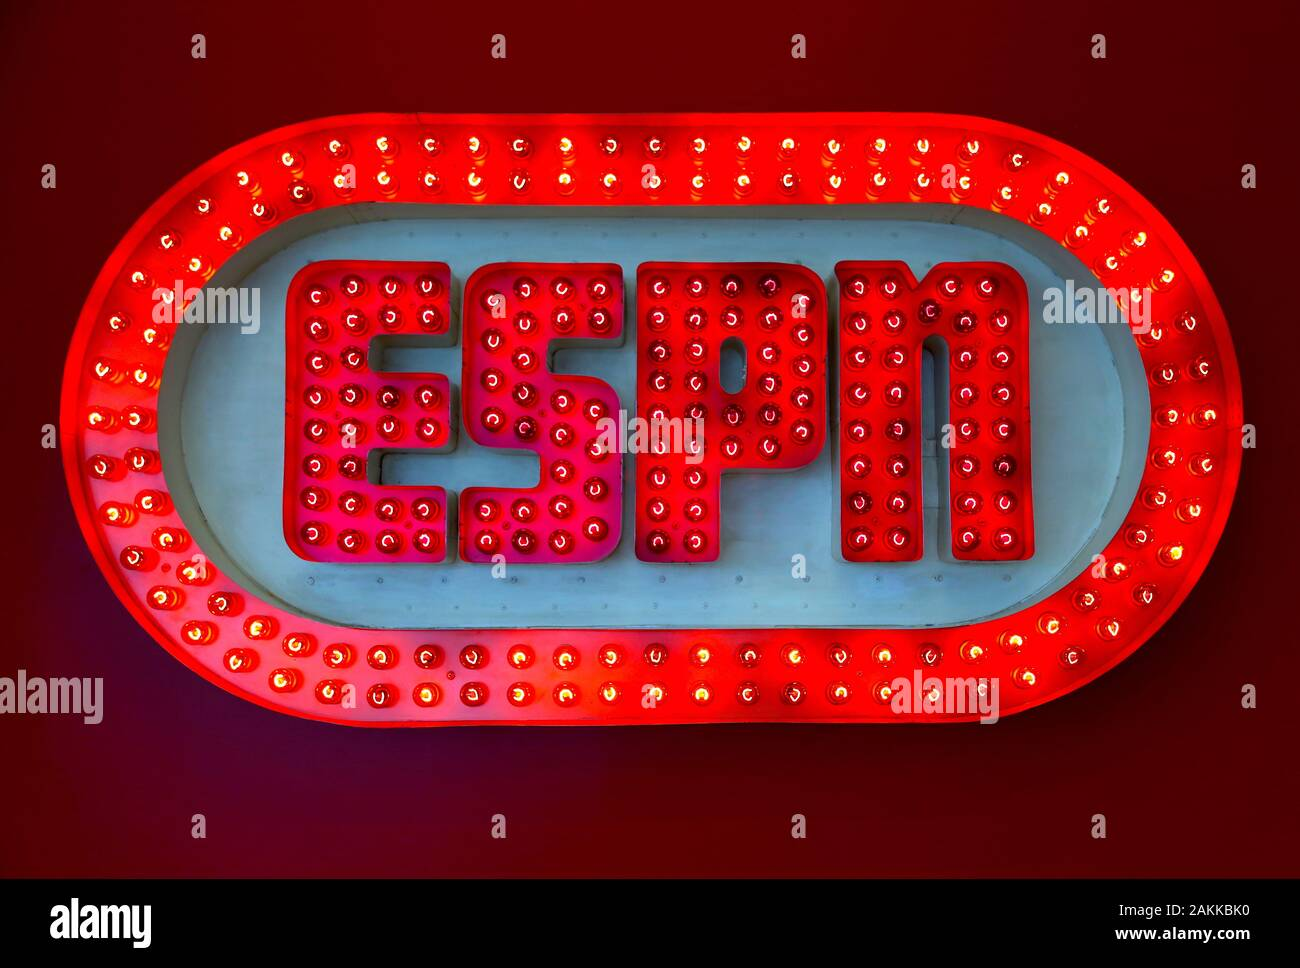 The Original Espn Logo Is Shown Displayed In A Highly Visual Led Light Display In The Digital Center 2 In Bristol Connecticut Stock Photo Alamy